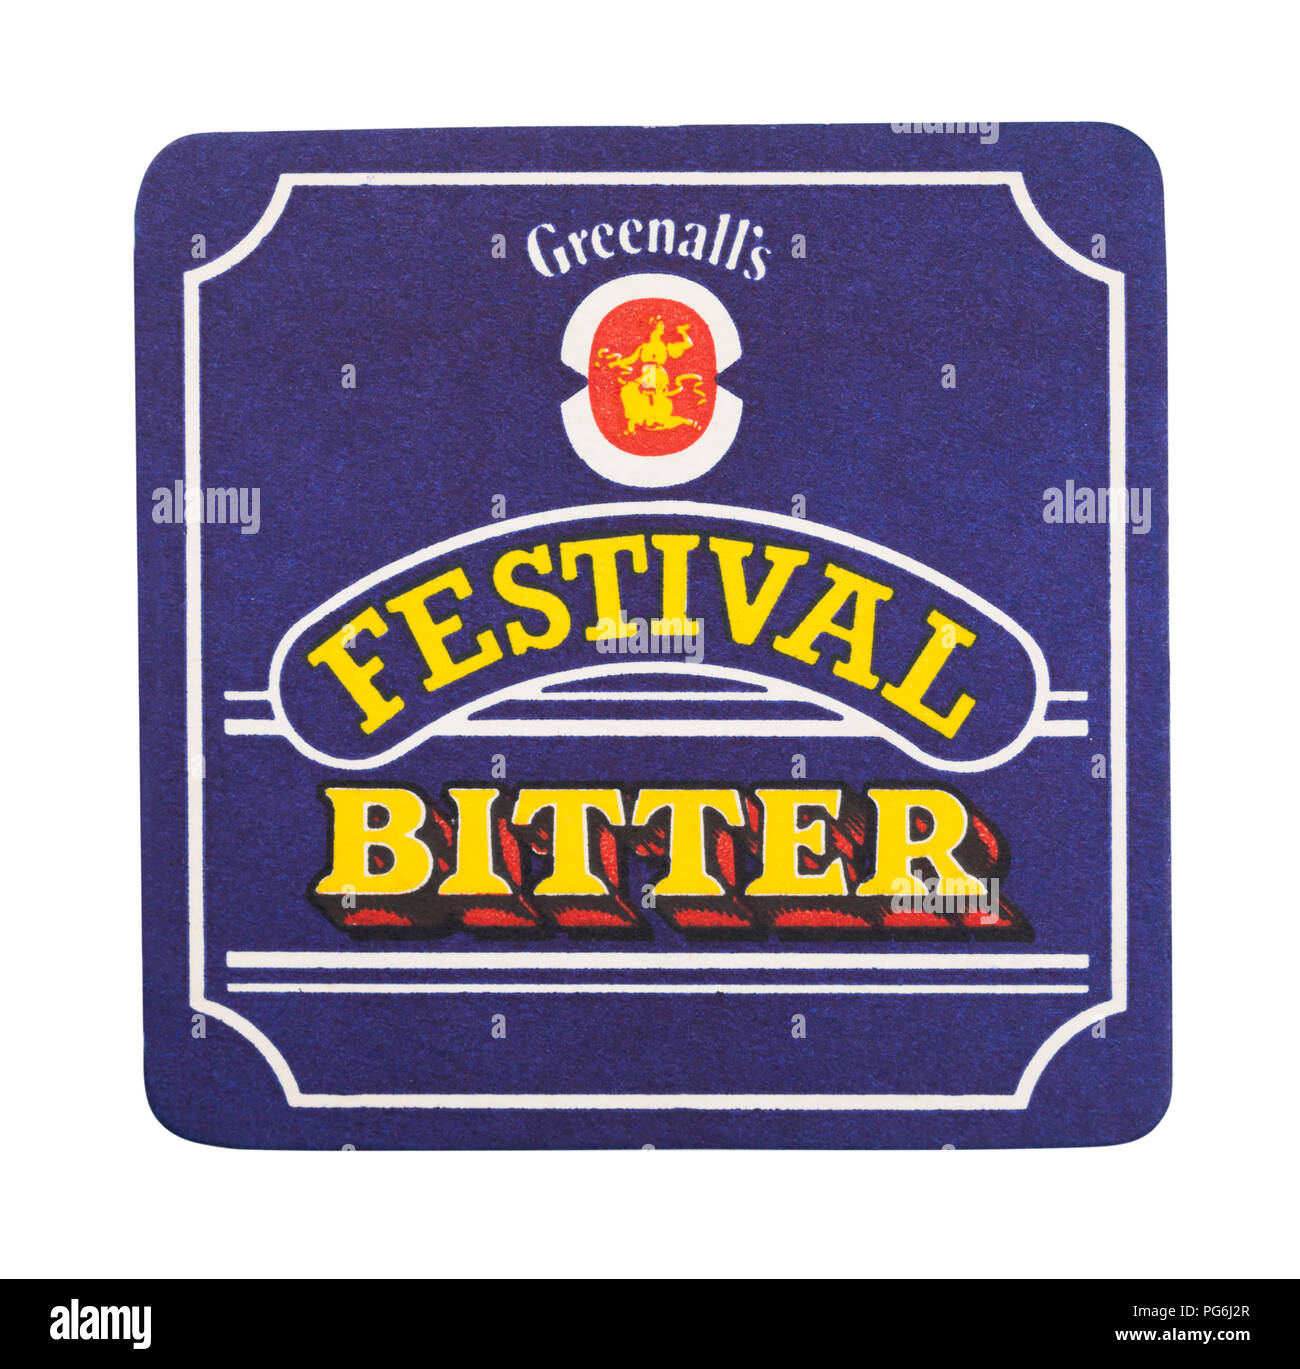 LONDON, UK - AUGUST 22, 2018: Greenall's Festival Bitter beer beermat coaster isolated on white background. - Stock Image